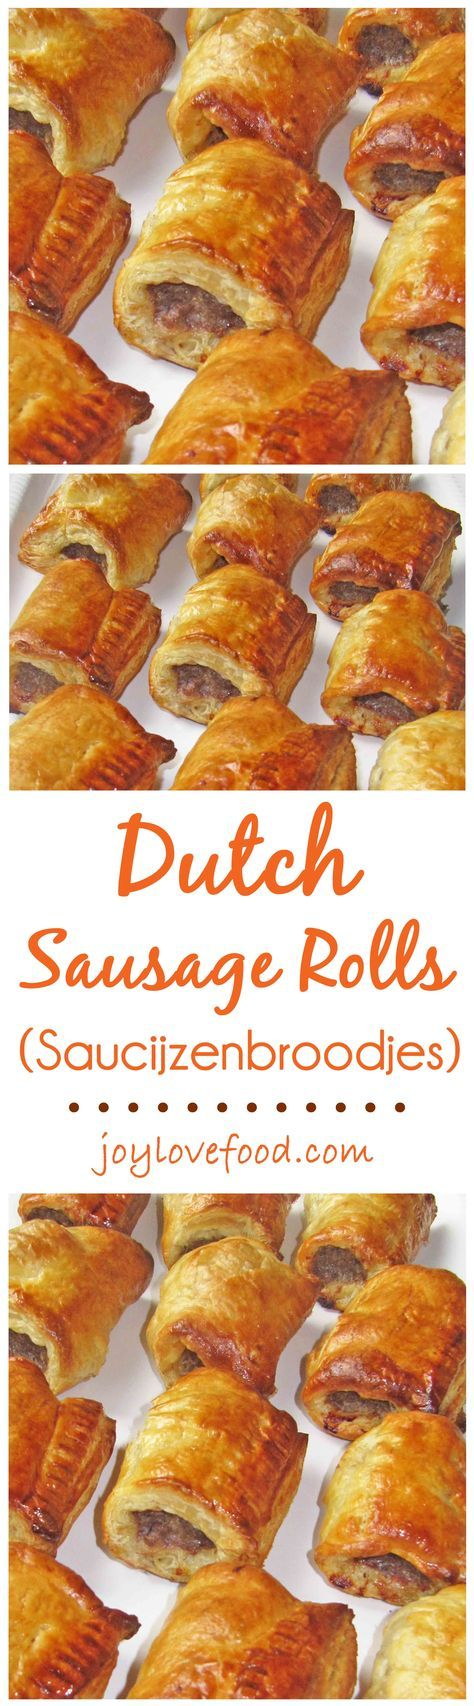 Dutch Sausage Rolls (Saucijzenbroodjes) – spiced meat rolled in puff pastry, a delicious appetizer or snack, perfect for the holiday season or anytime.